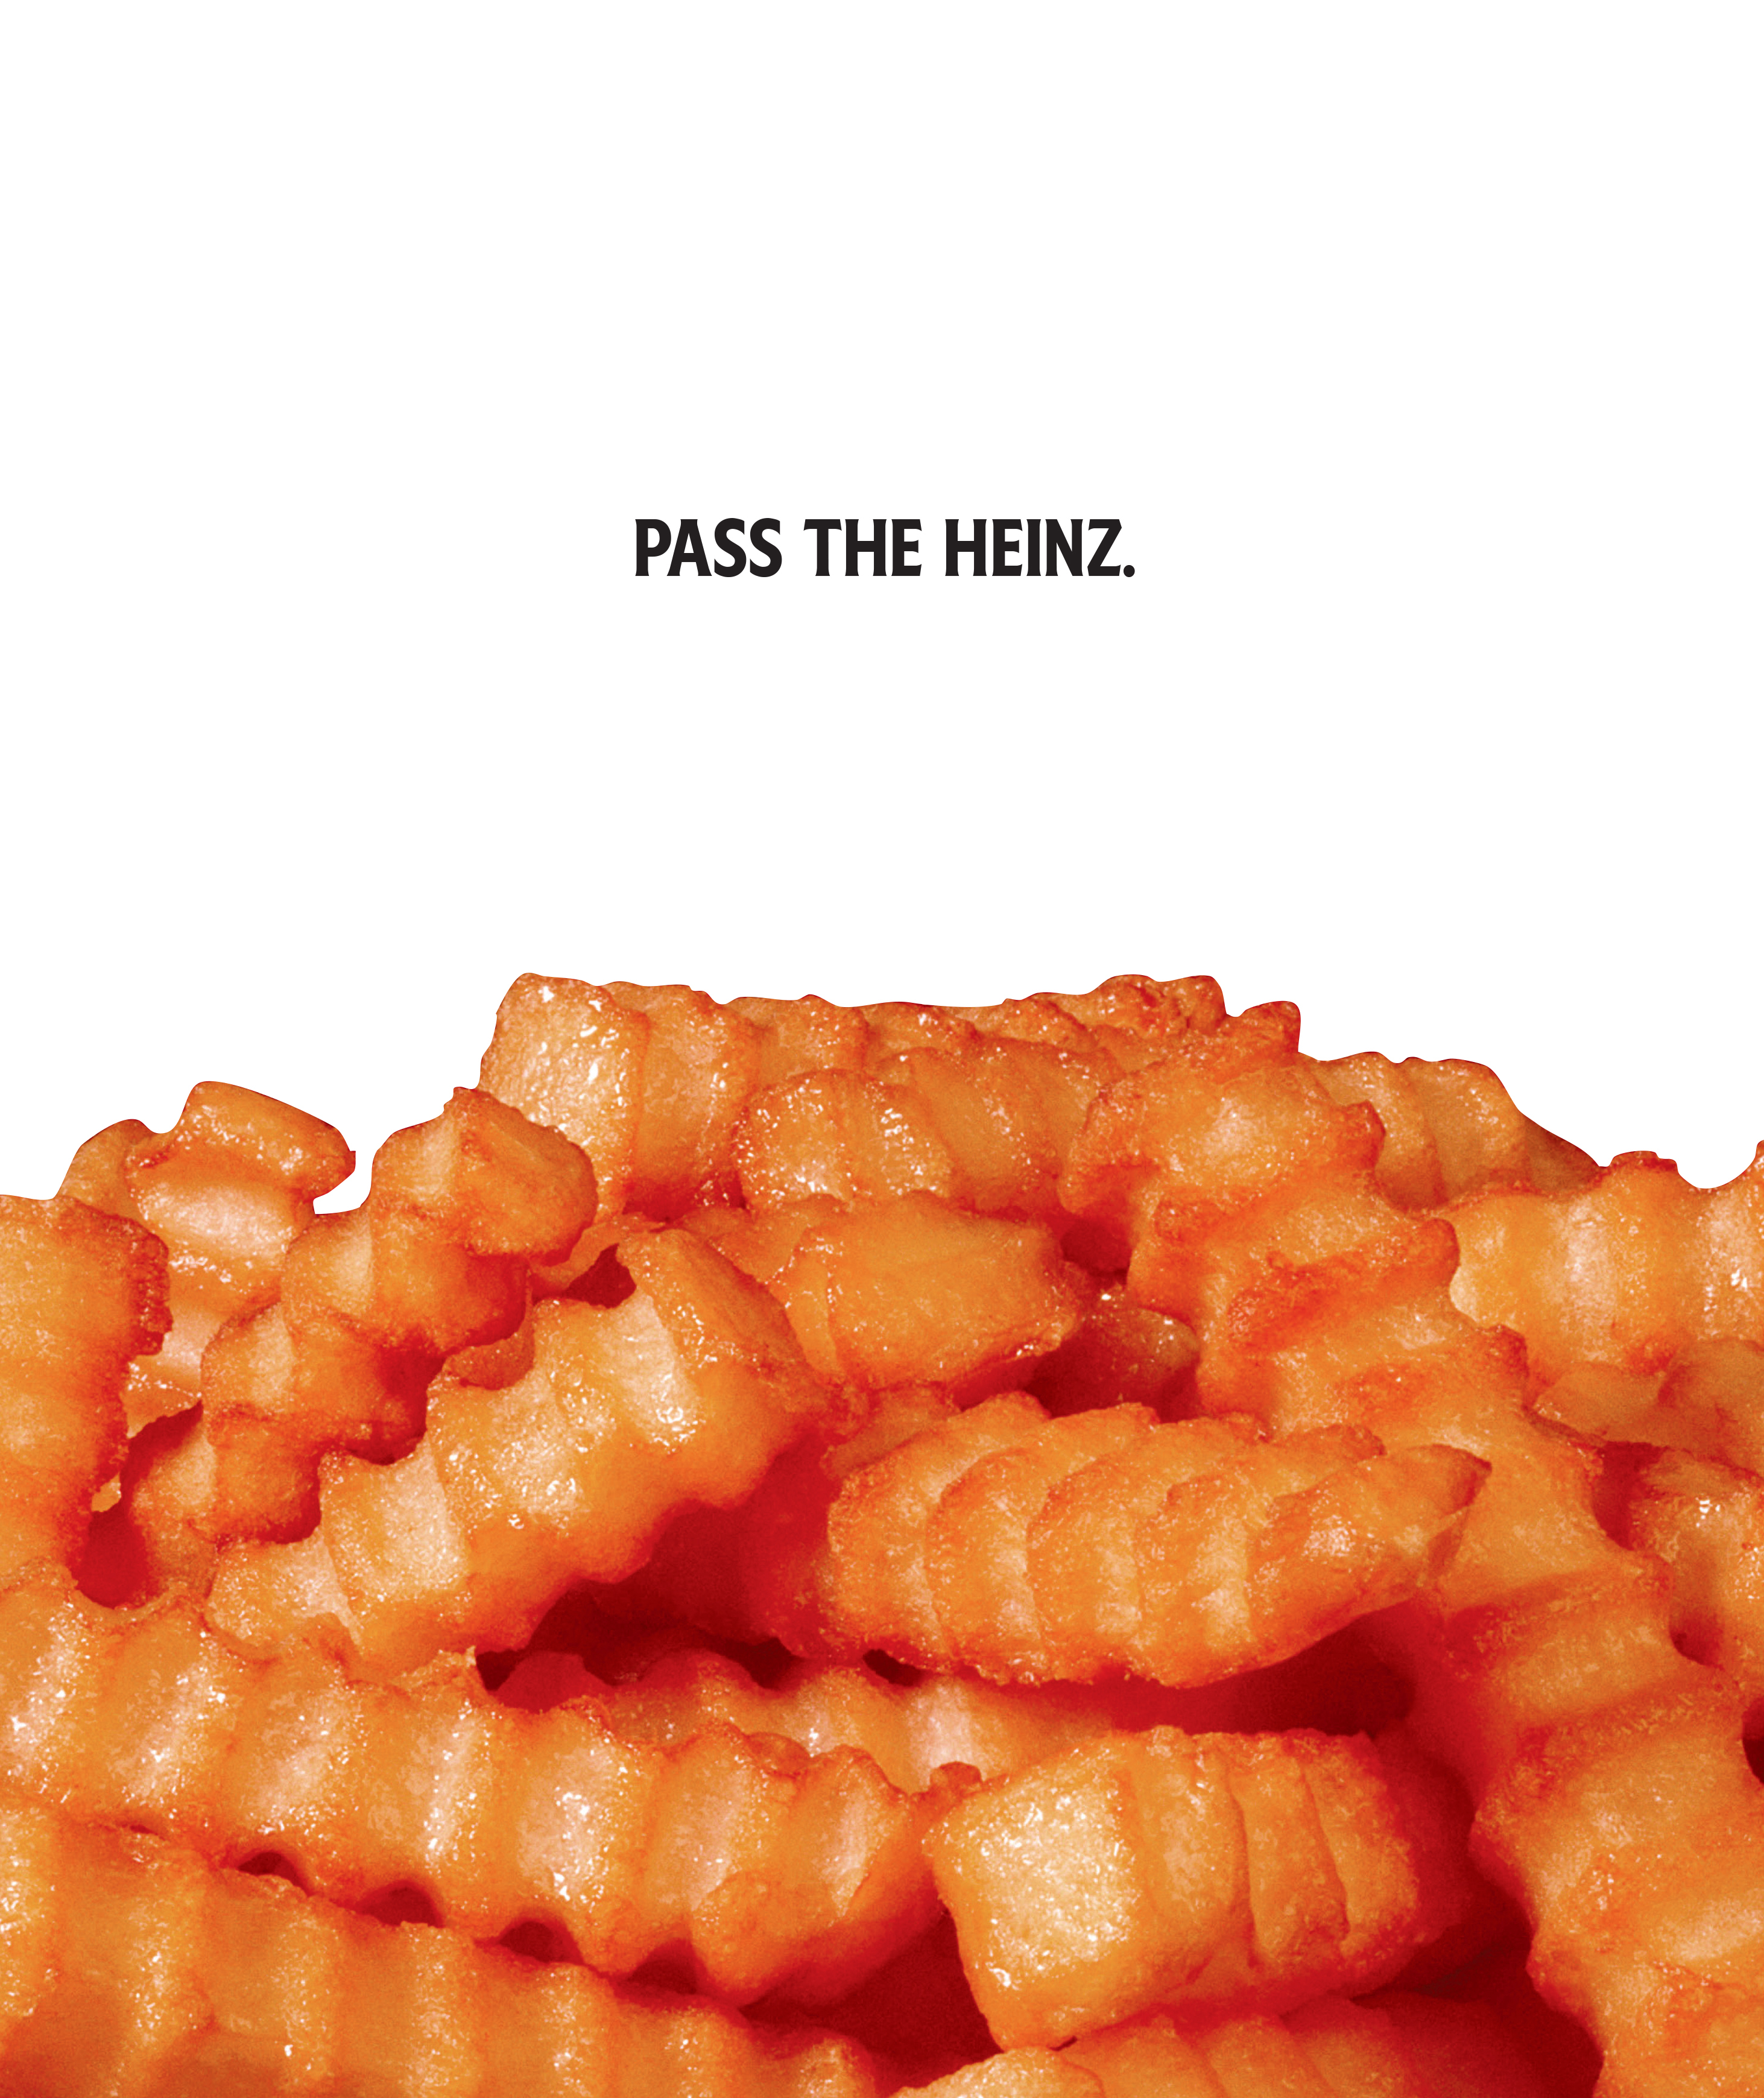 Heinz taps Sterling Cooper Draper Pryce and DAVID to launch new campaign (Photo: Business Wire)